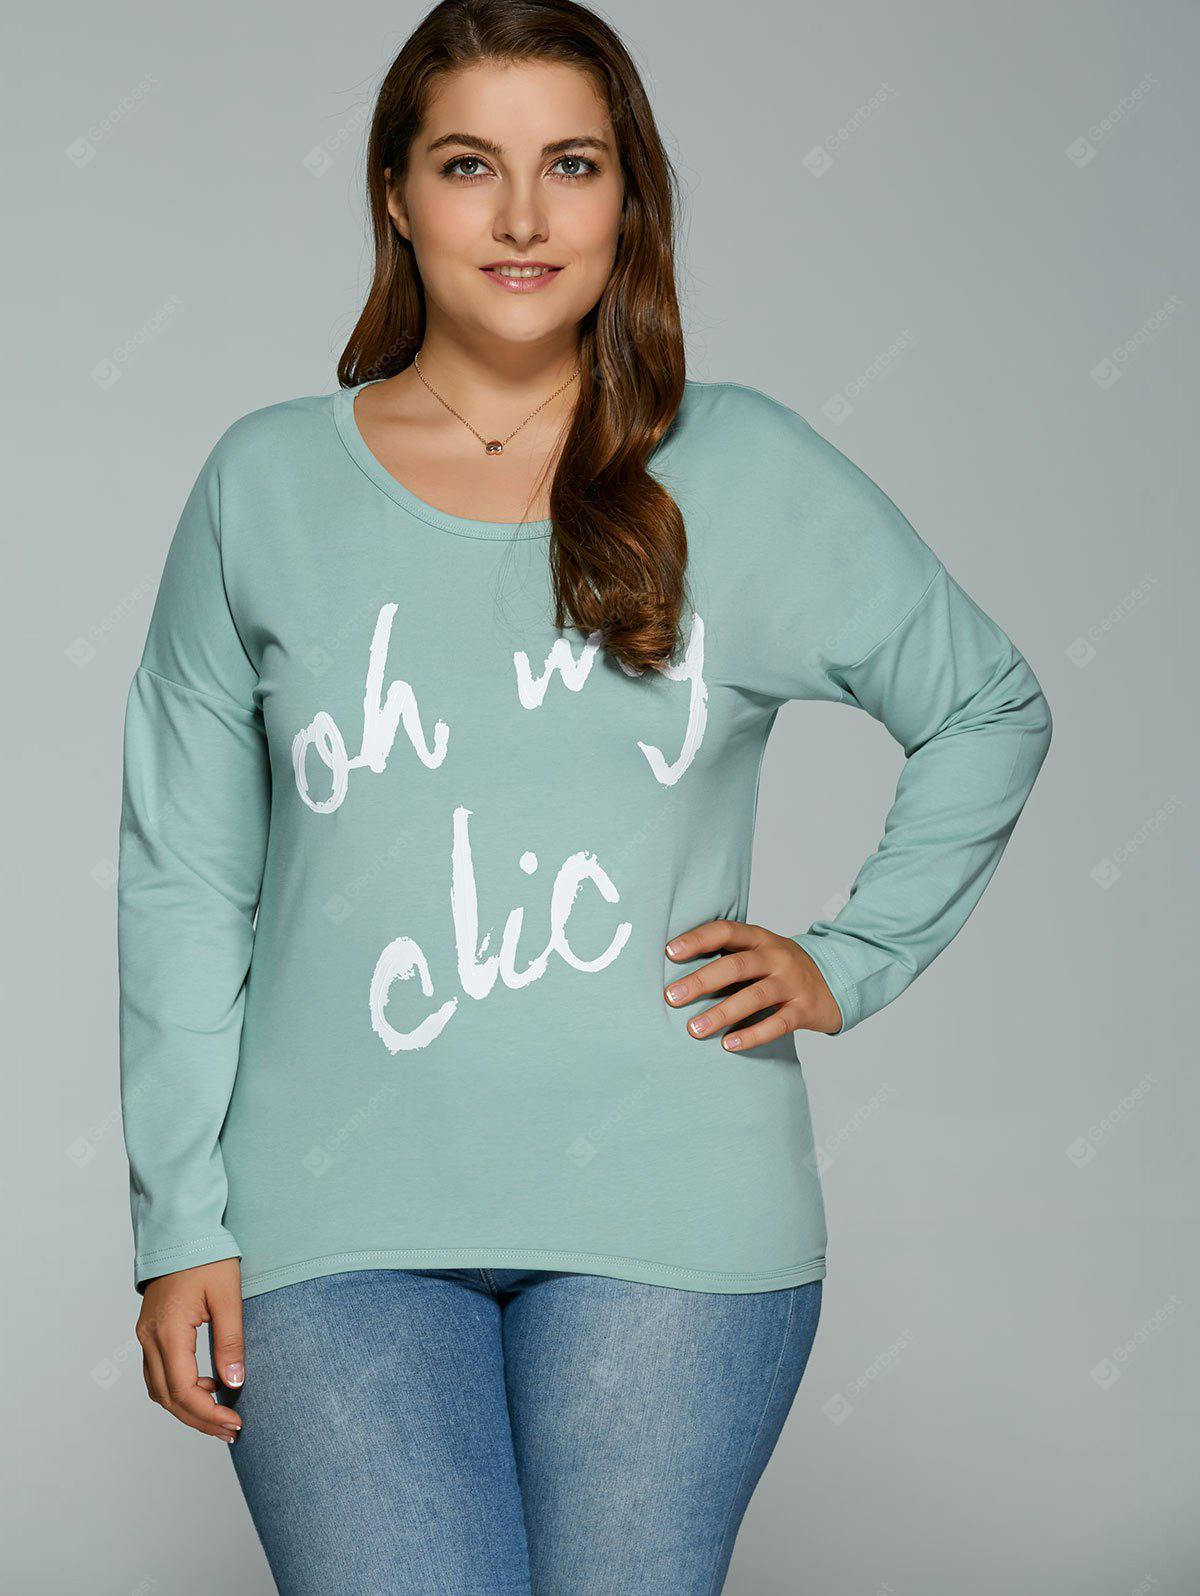 Plus Size Oh My Clic T-Shirt